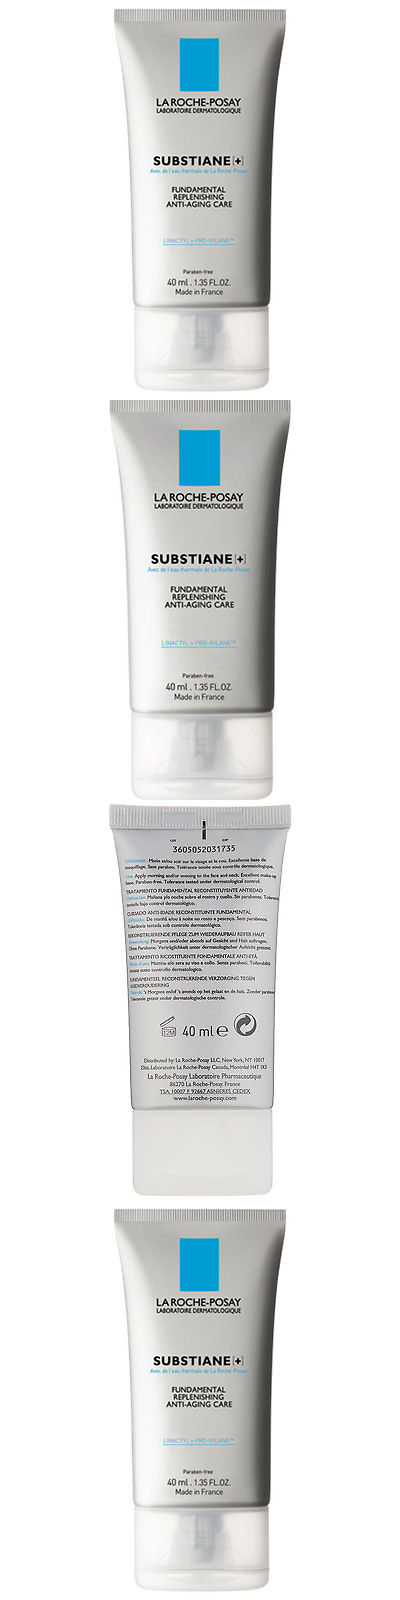 Lightening Cream La Roche Posay Substiane 1 35 Ounce Buy It Now Only 36 94 On Ebay Lightening Creams Anti Aging Skin Products Anti Aging Skin Care